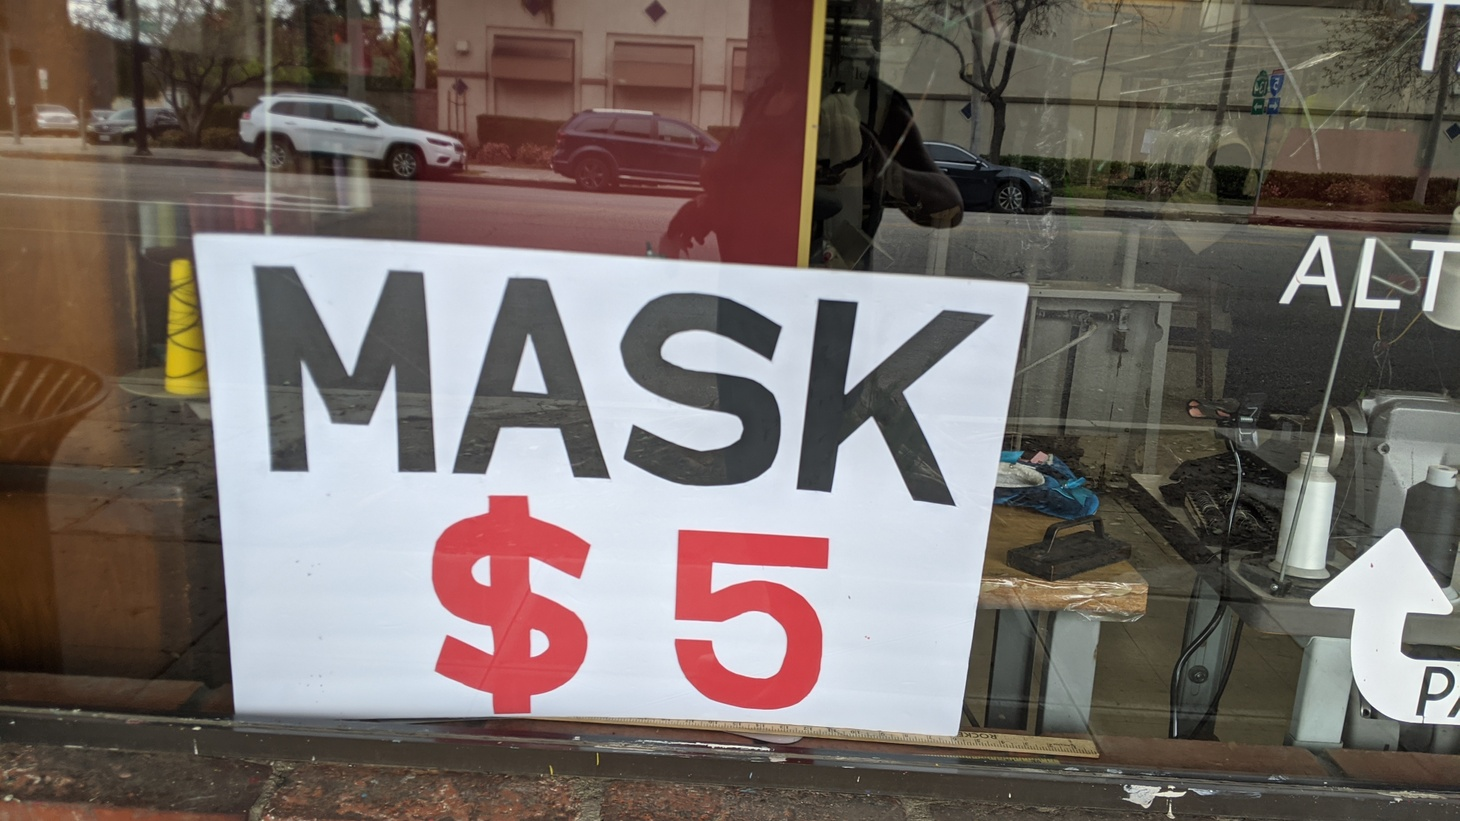 Californians must wear masks at essential businesses. This cleaners in Burbank, California is selling masks for $5 each.